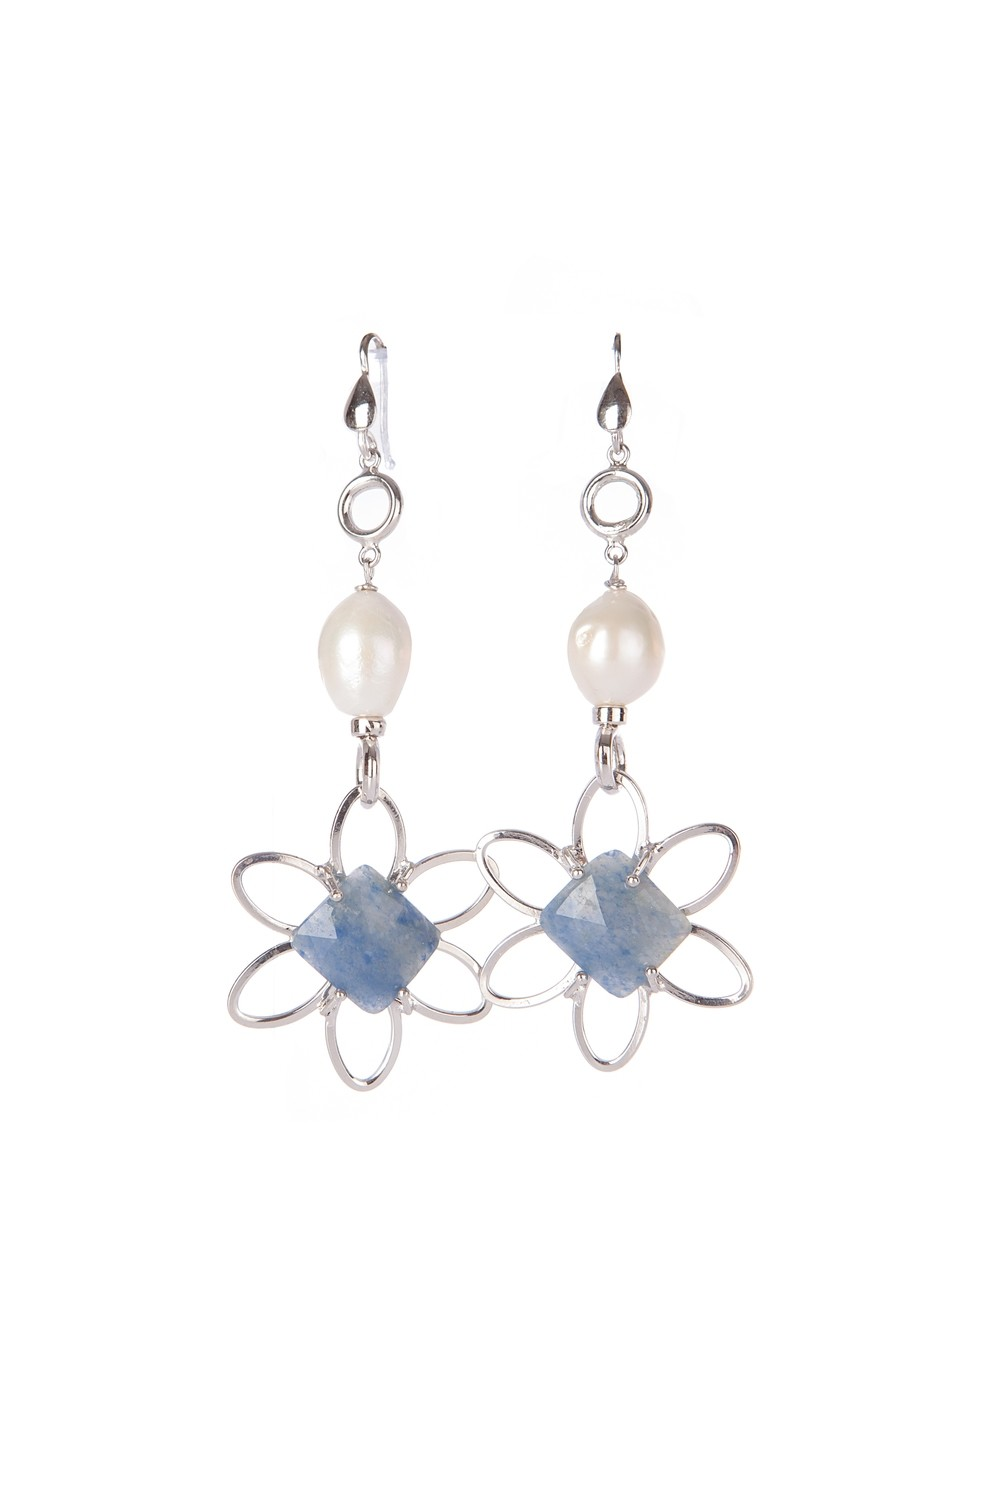 Orecchini in argento 925 con zaffiri e perle di fiume - 925 Silver earrings with sapphires and freshwater pearls